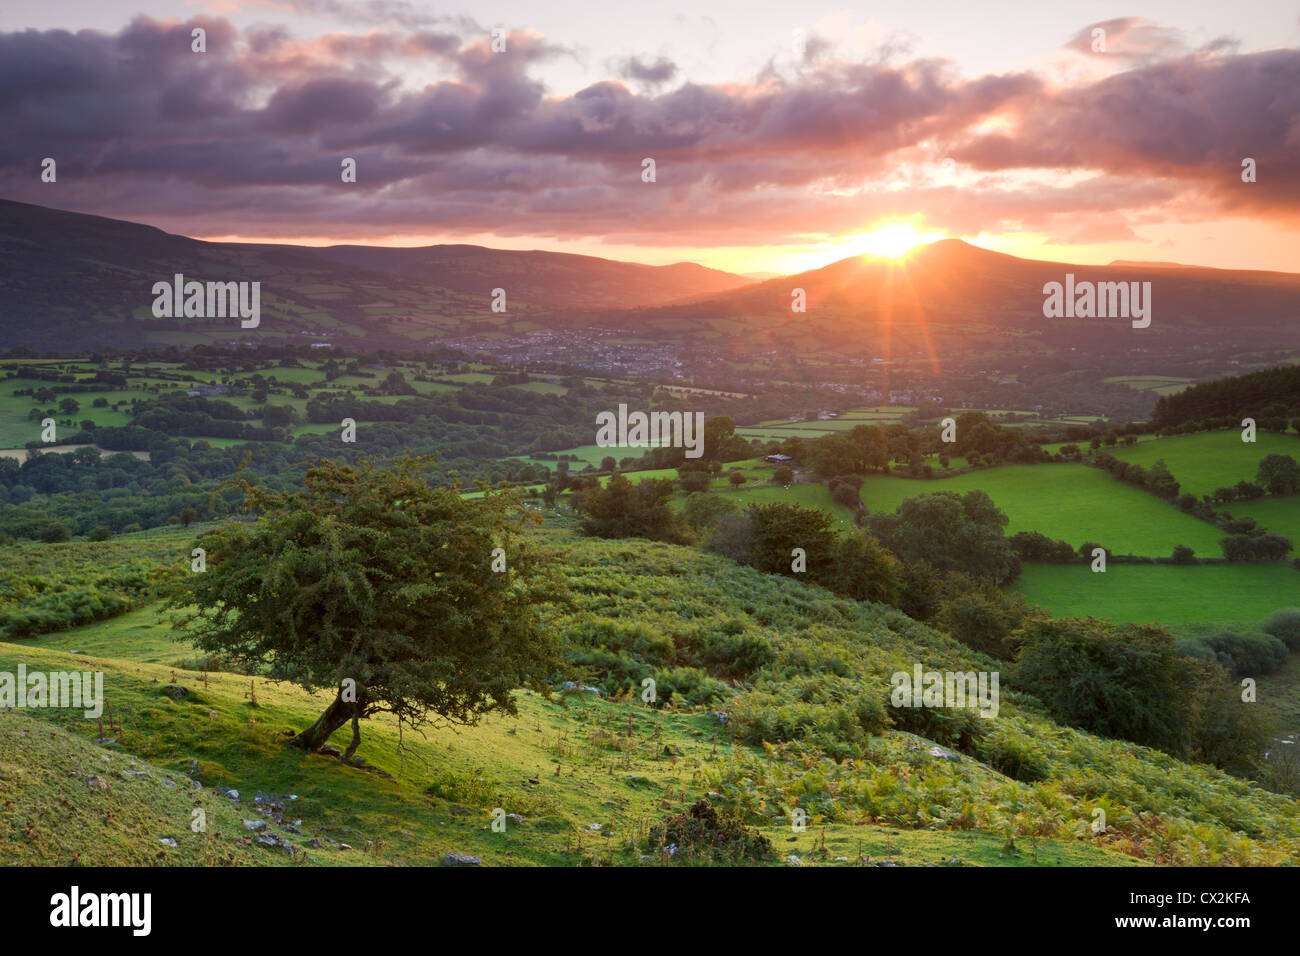 Sunrise over the Sugarloaf and town of Crickhowell, Brecon Beacons National Park, Powys, Wales. Summer (August) - Stock Image